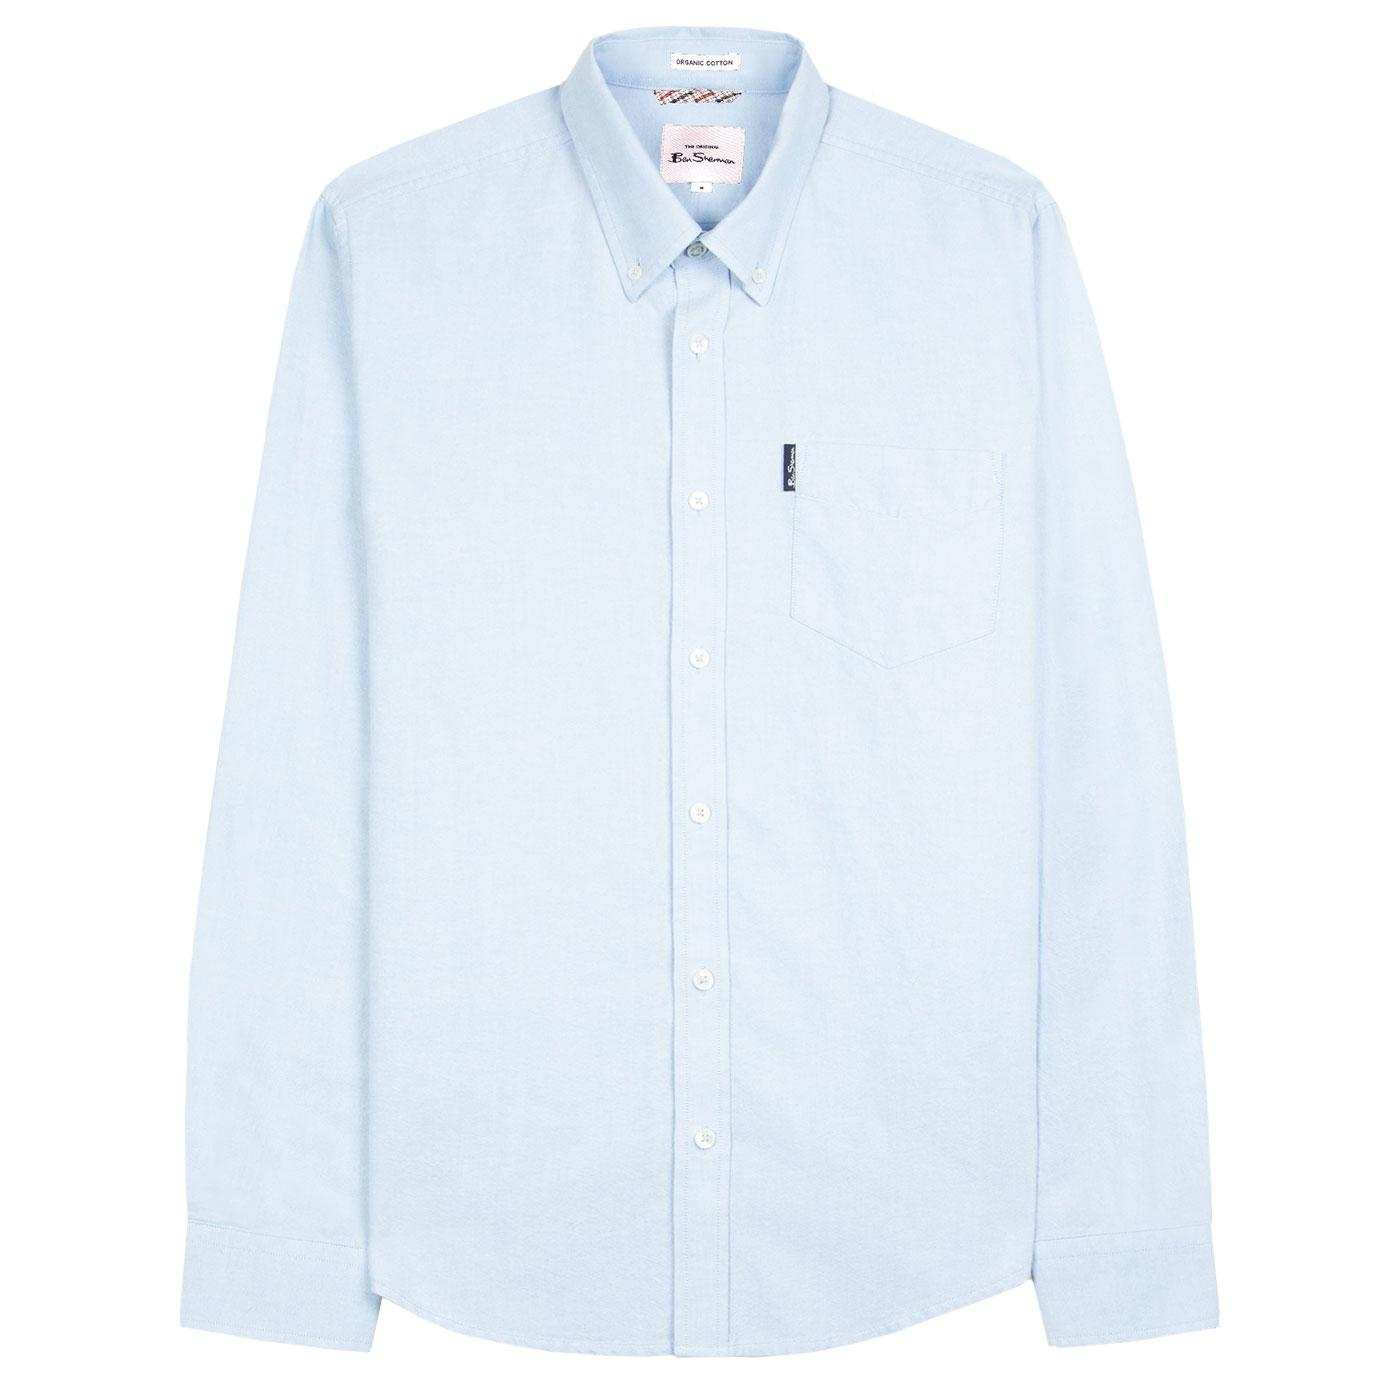 BEN SHERMAN Signature Mod Oxford Shirt in Sky Blue